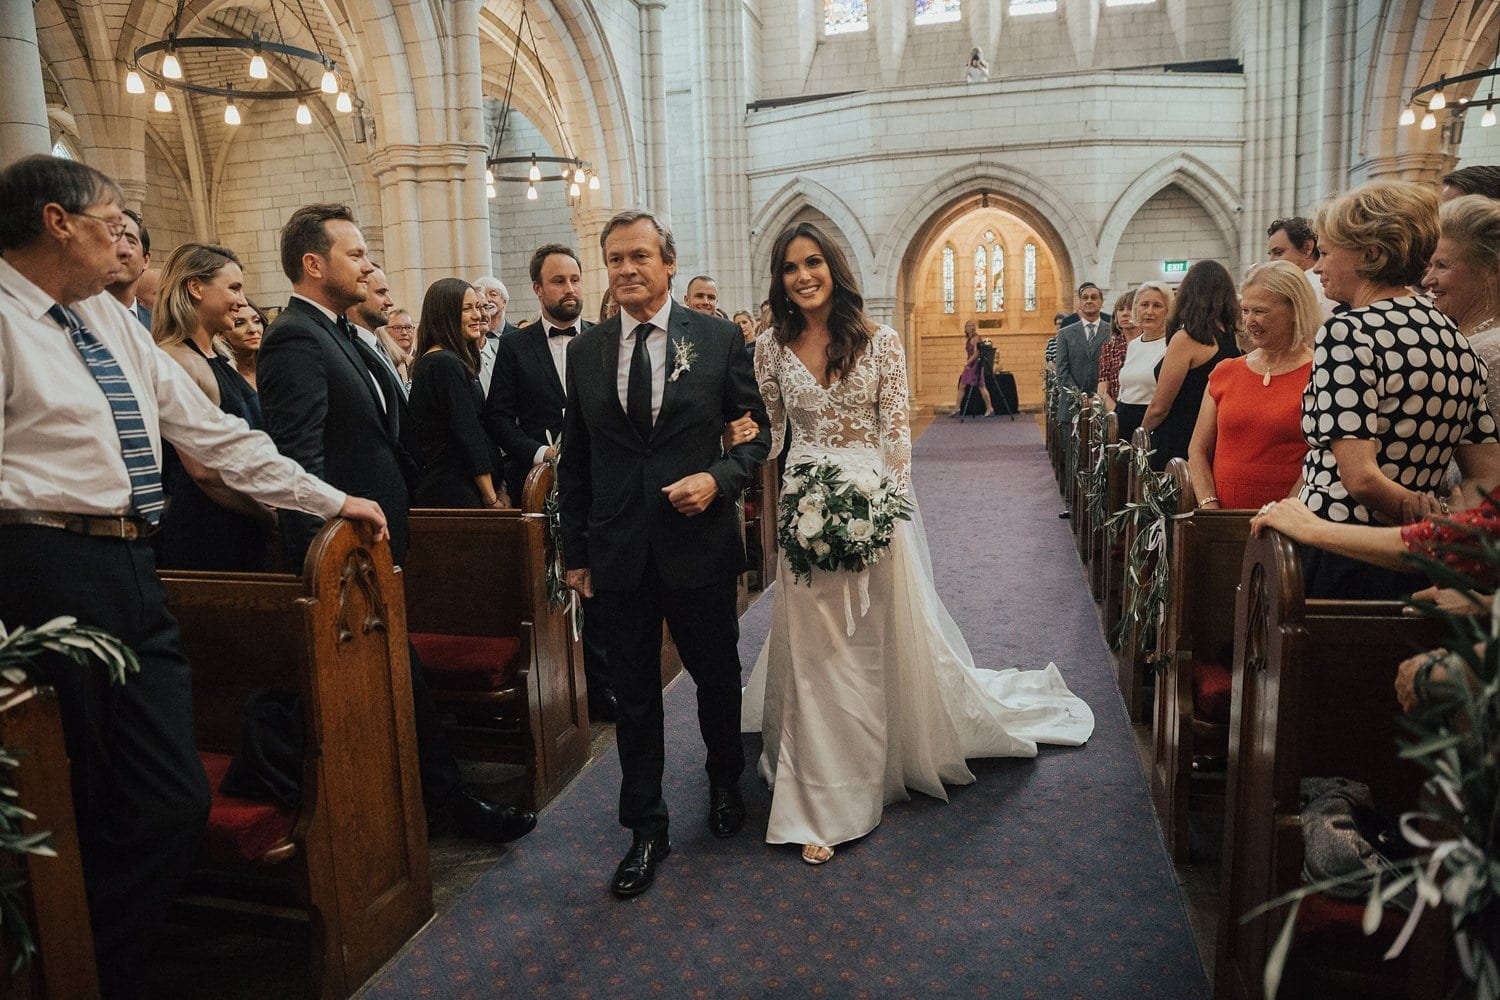 Real Weddings | Vinka Design | Real Brides Wearing Vinka Gowns | Hannah and Campbell - Hannah walking down aisle wearing bespoke Vinka ; her gown made in beaded lace